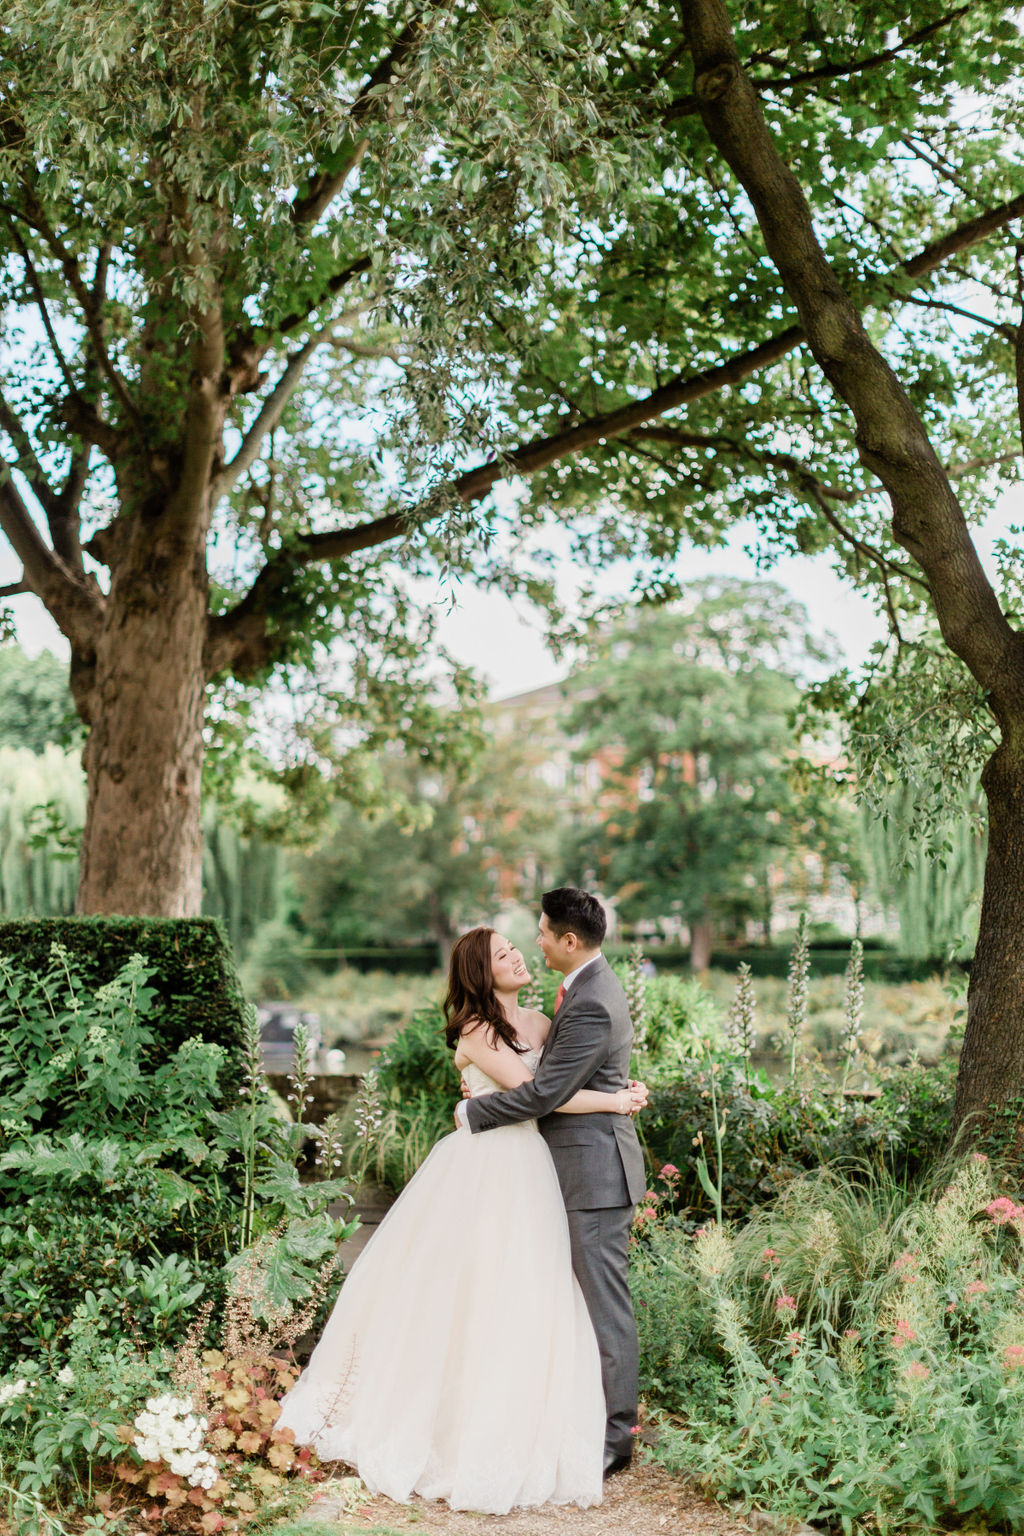 Jacqueline and VictorRichmond, London, June 2019 - Images by Jacob and Pauline